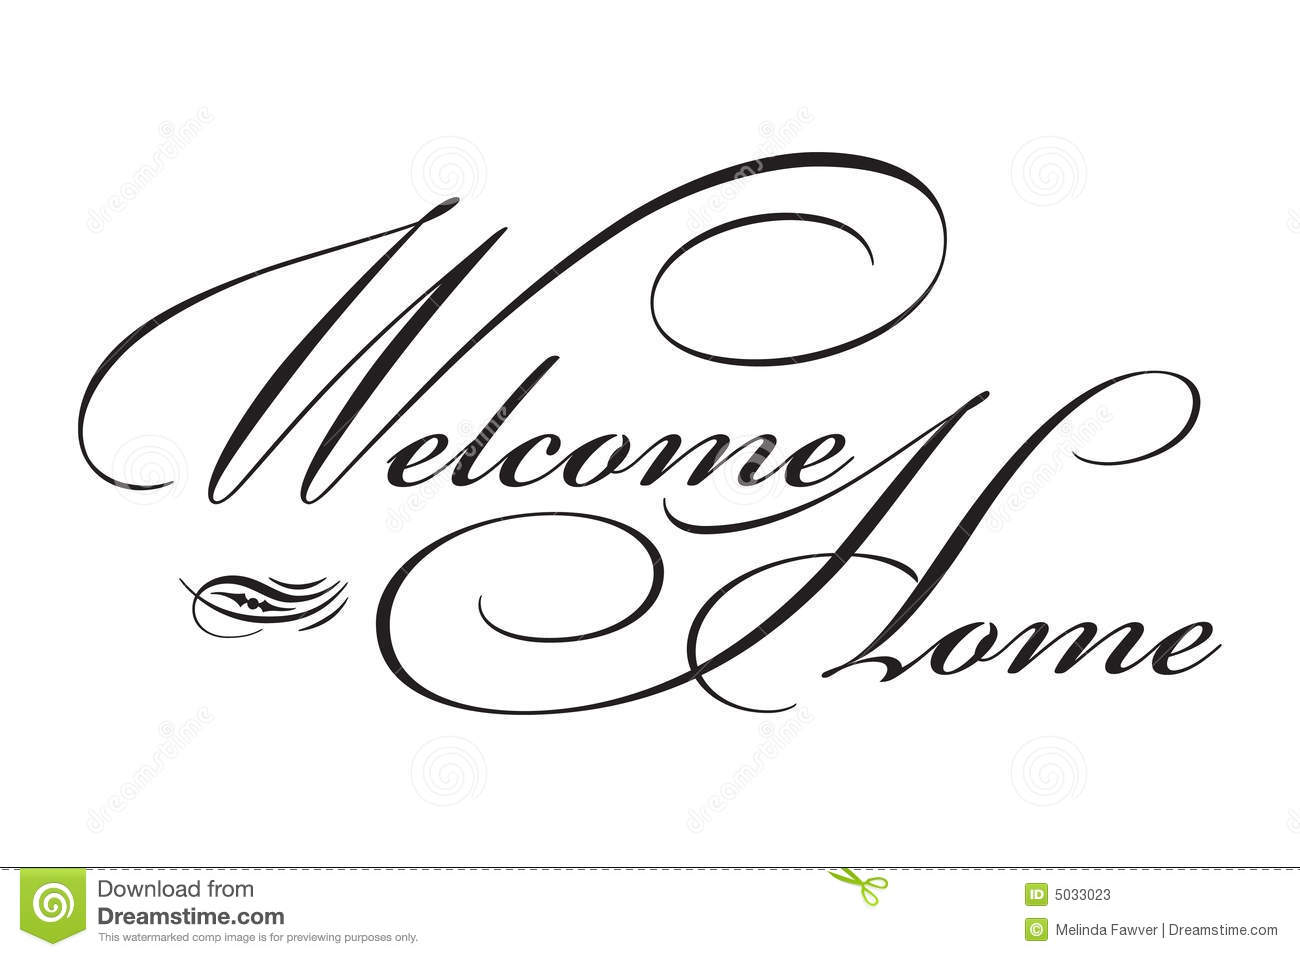 Welcome Home sign in elegant black script type with ornament.